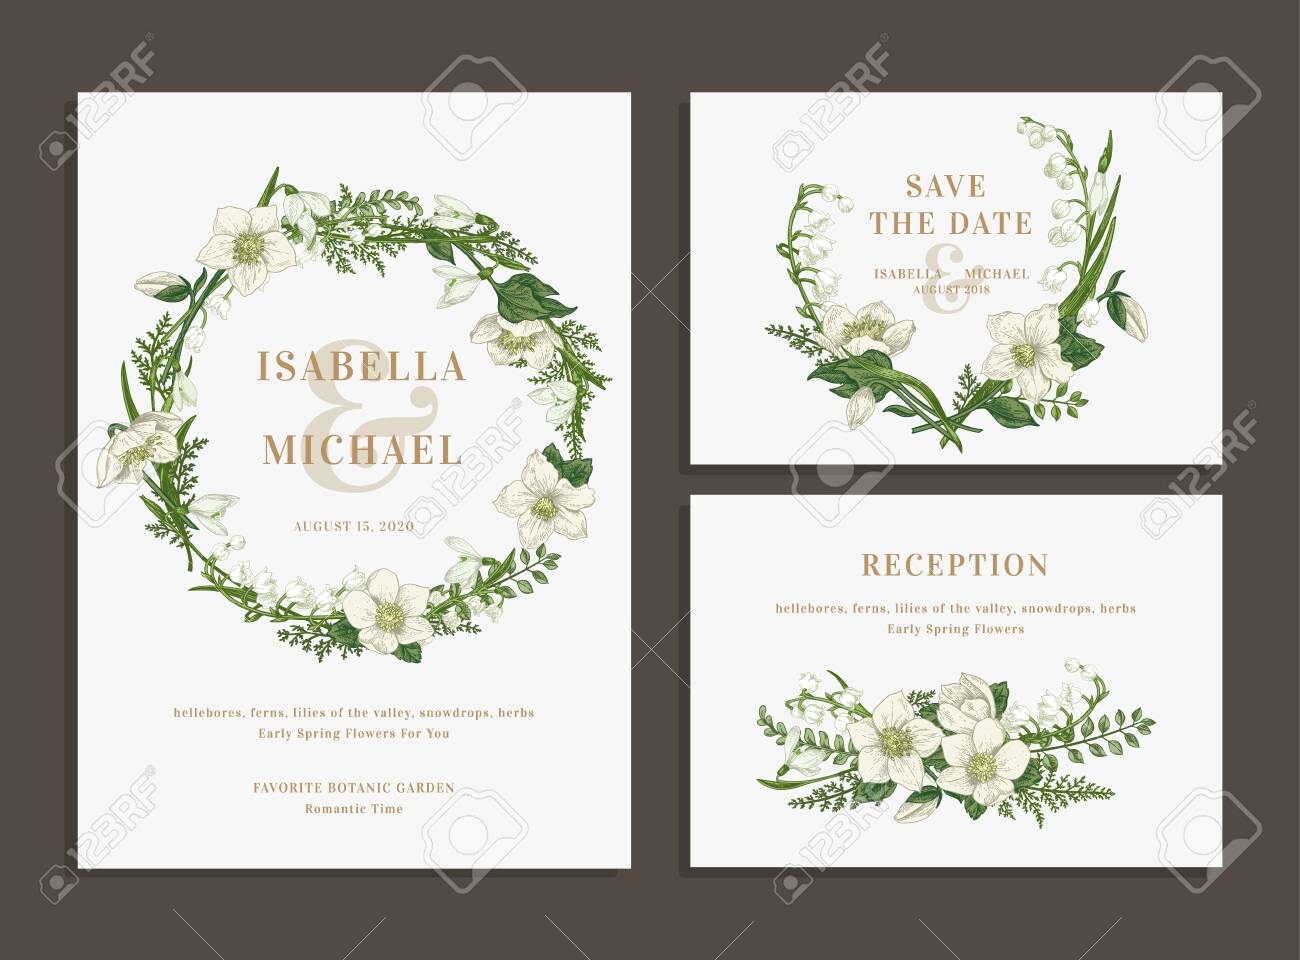 Set of wedding cards with a green wreath and a bouquet. Invitation, save the date, reception. - 149054995